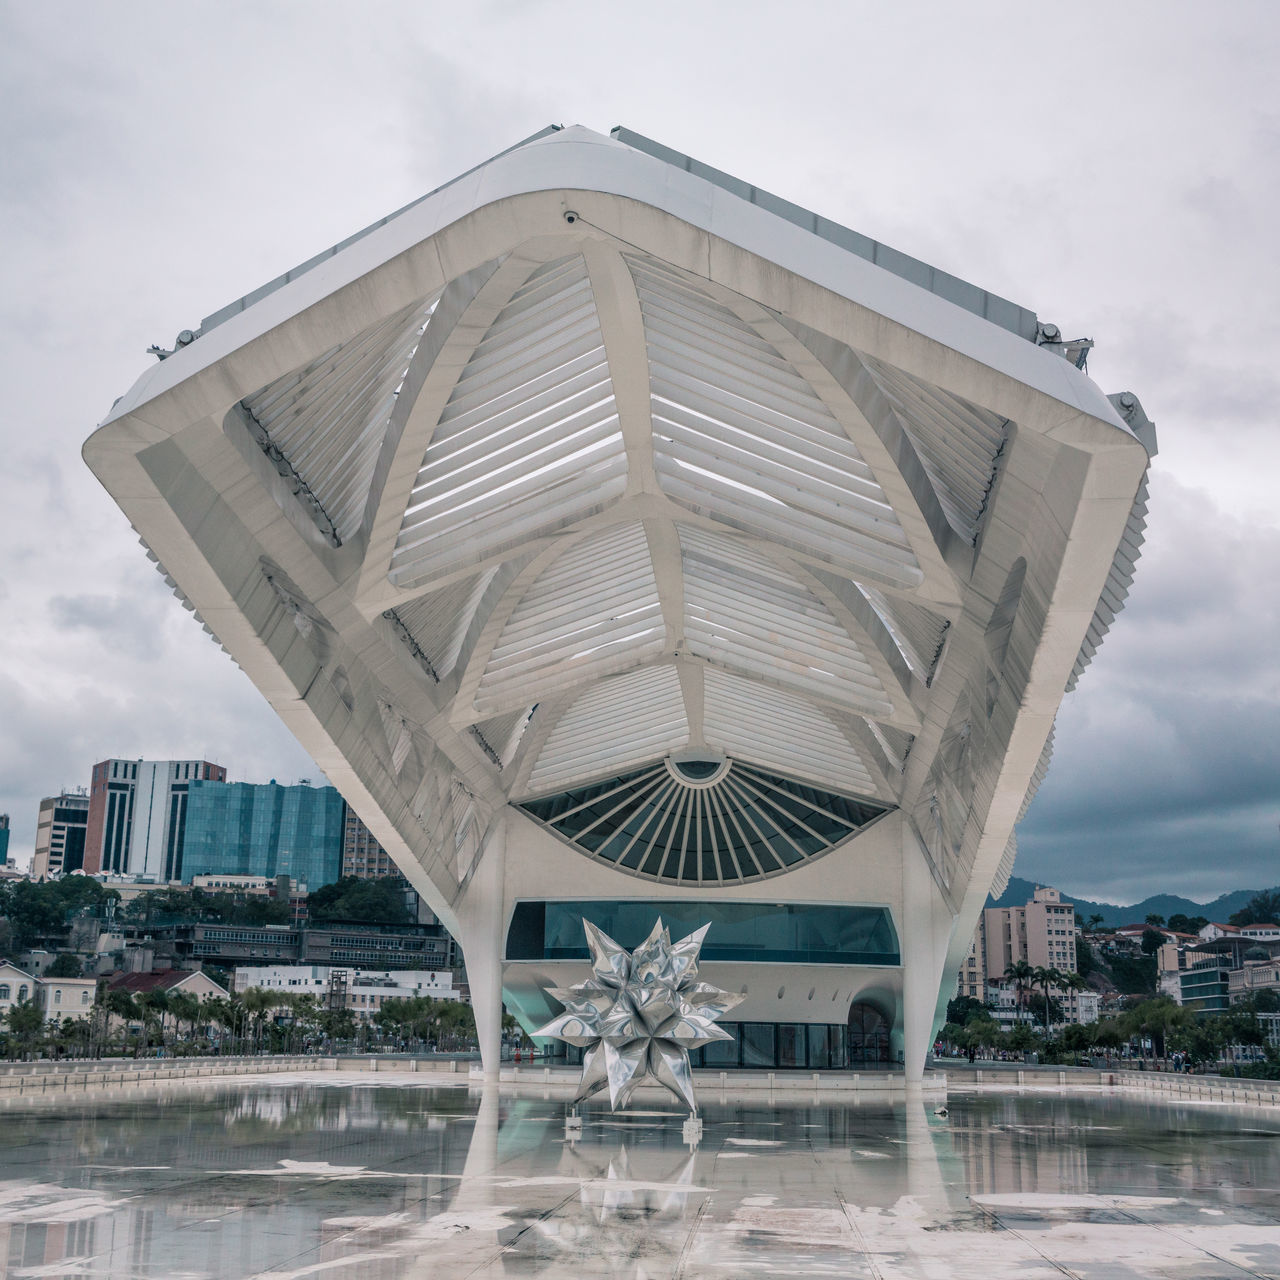 The beautiful Museu do Amanhã. Architecture Building Exterior Built Structure City Cloud - Sky Cloudy Day Lines Lines And Shapes Lines, Shapes And Curves Modern Modern Architecture Moody Moody Sky Nature No People Outdoors Reflection Sculpture Sea Sky Star The Architect - 2017 EyeEm Awards Water Water Reflections